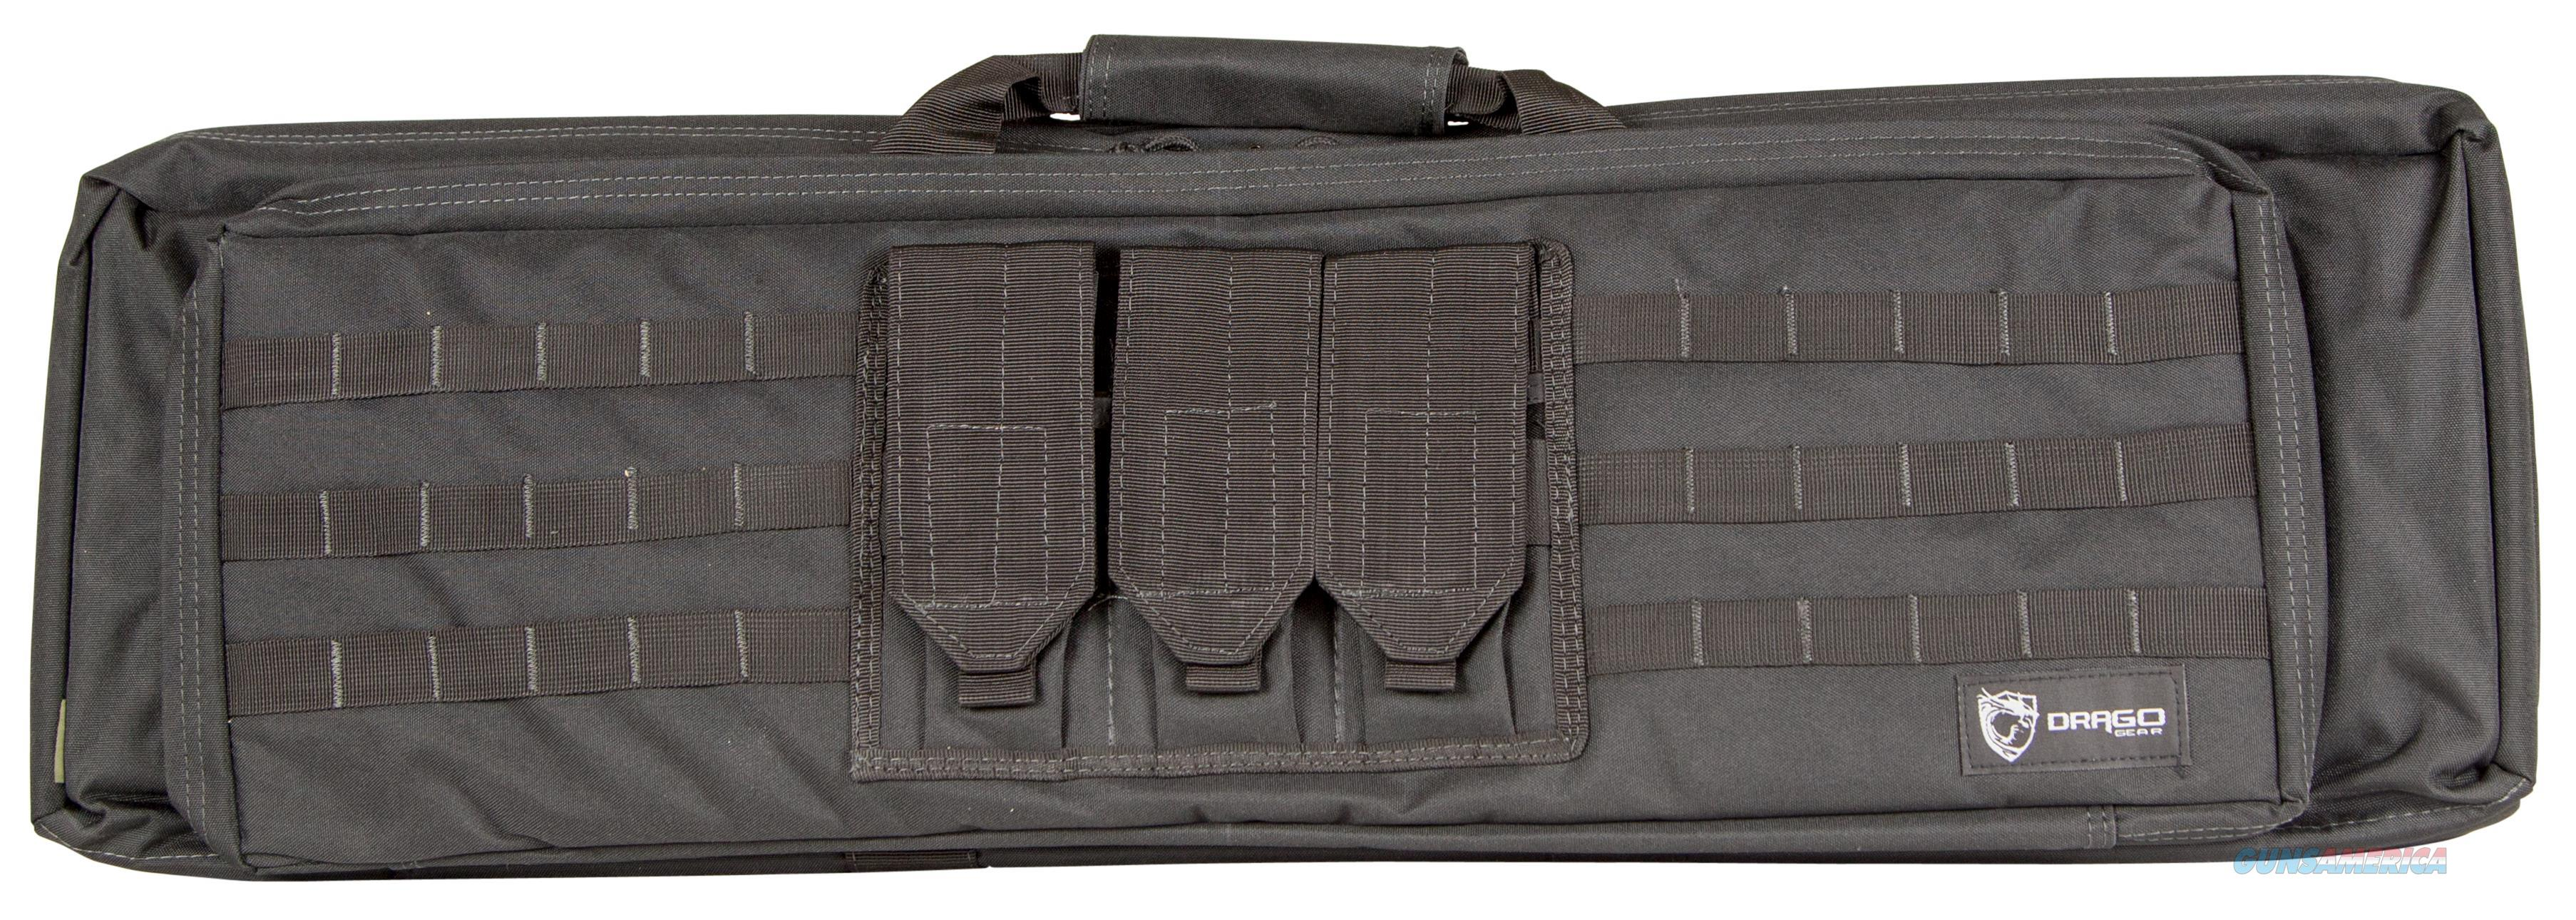 "Drago Gear 12306Bl Xt Double Gun Case 600D Polyester Black 36.25"" X 11"" X 4.5"" Exterior 12-306BL  Non-Guns > Gun Cases"